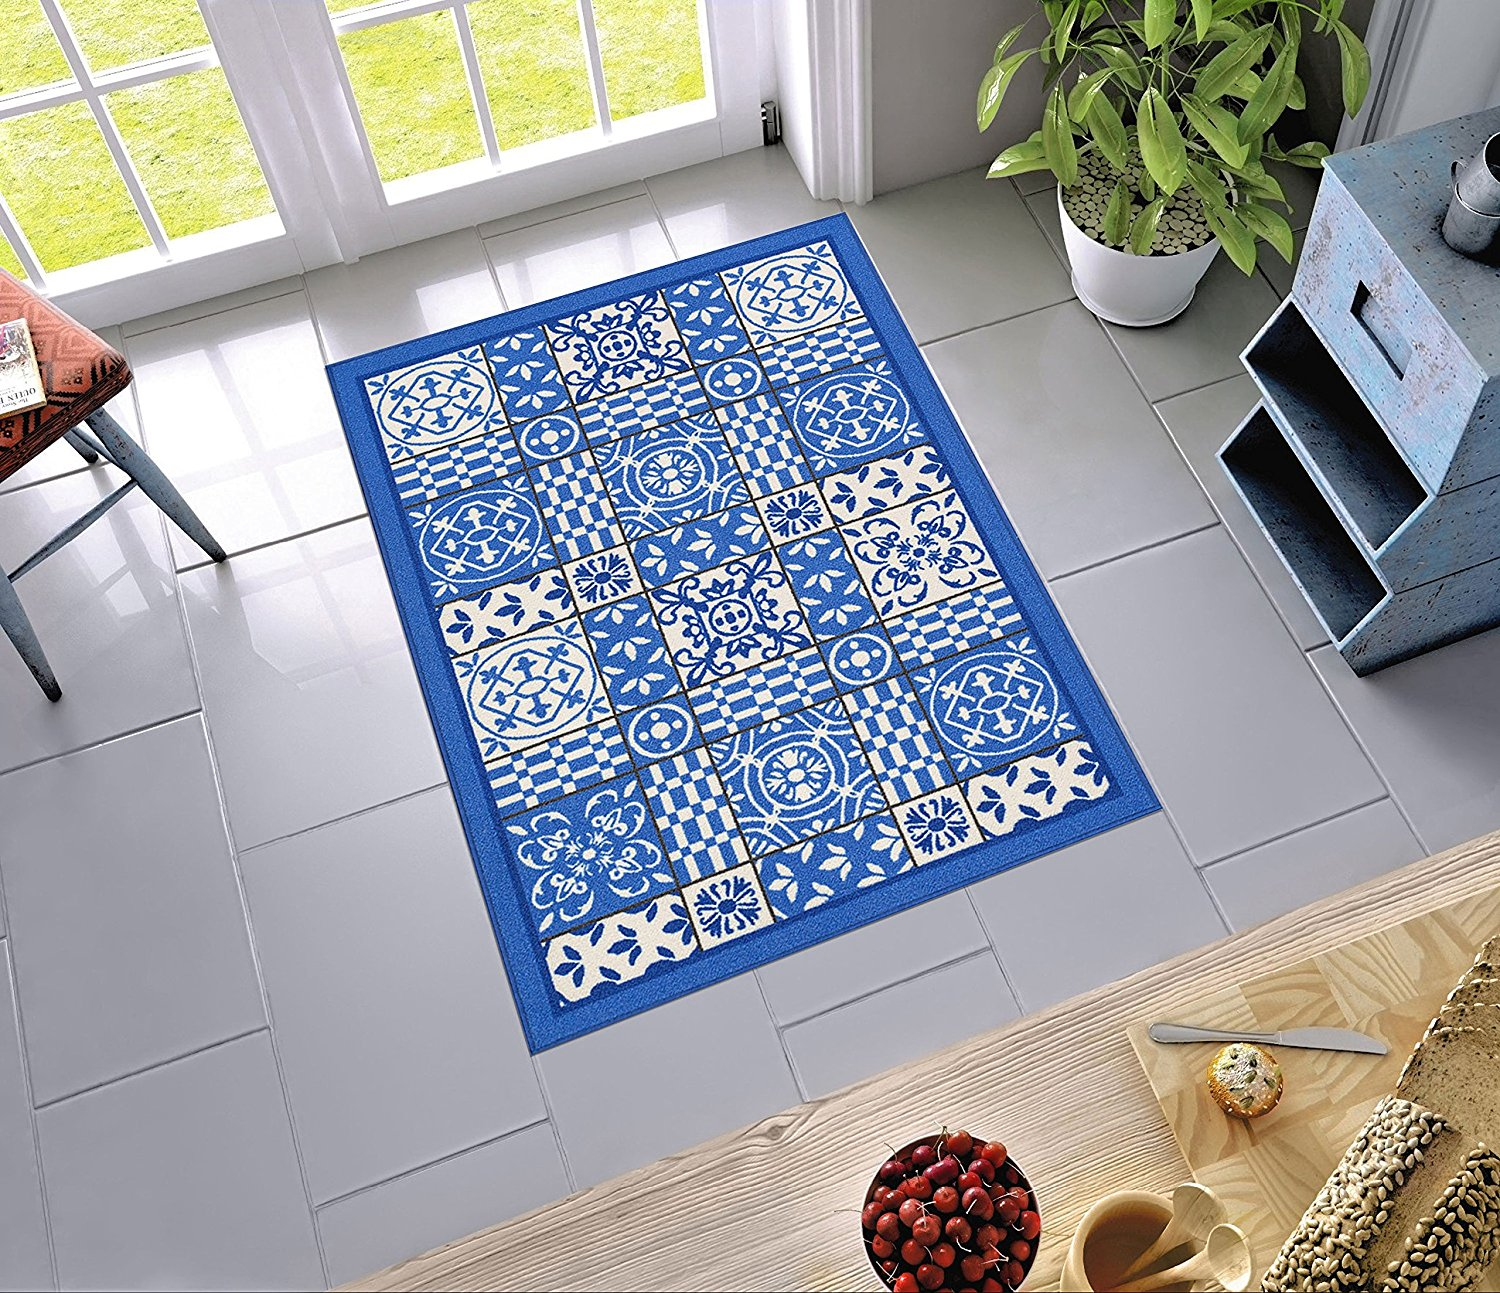 Cheap Pile Of Tiles, find Pile Of Tiles deals on line at Alibaba.com